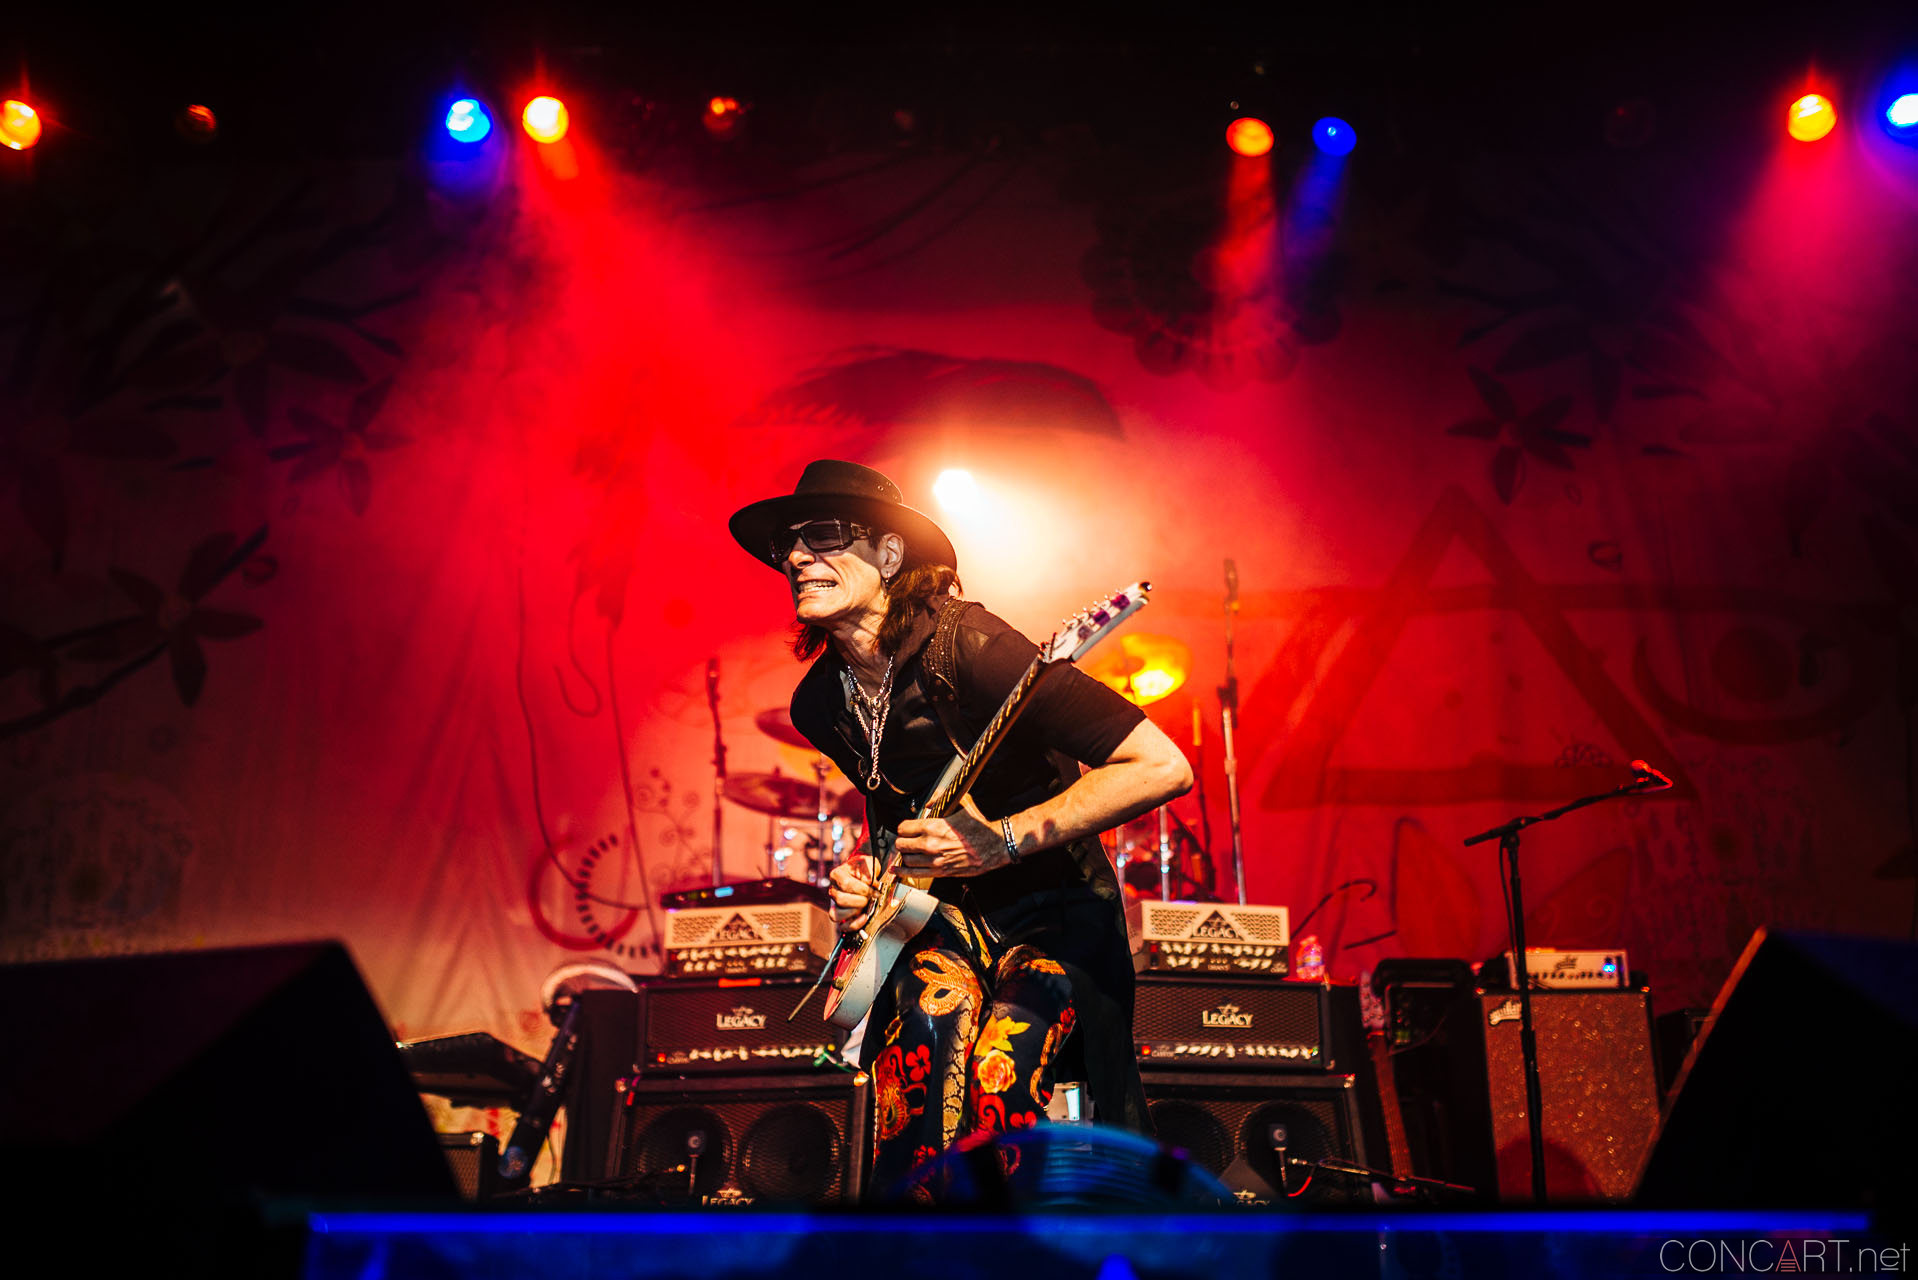 steve_vai_live_egyptian_room_old_national_indianapolis_2013-30